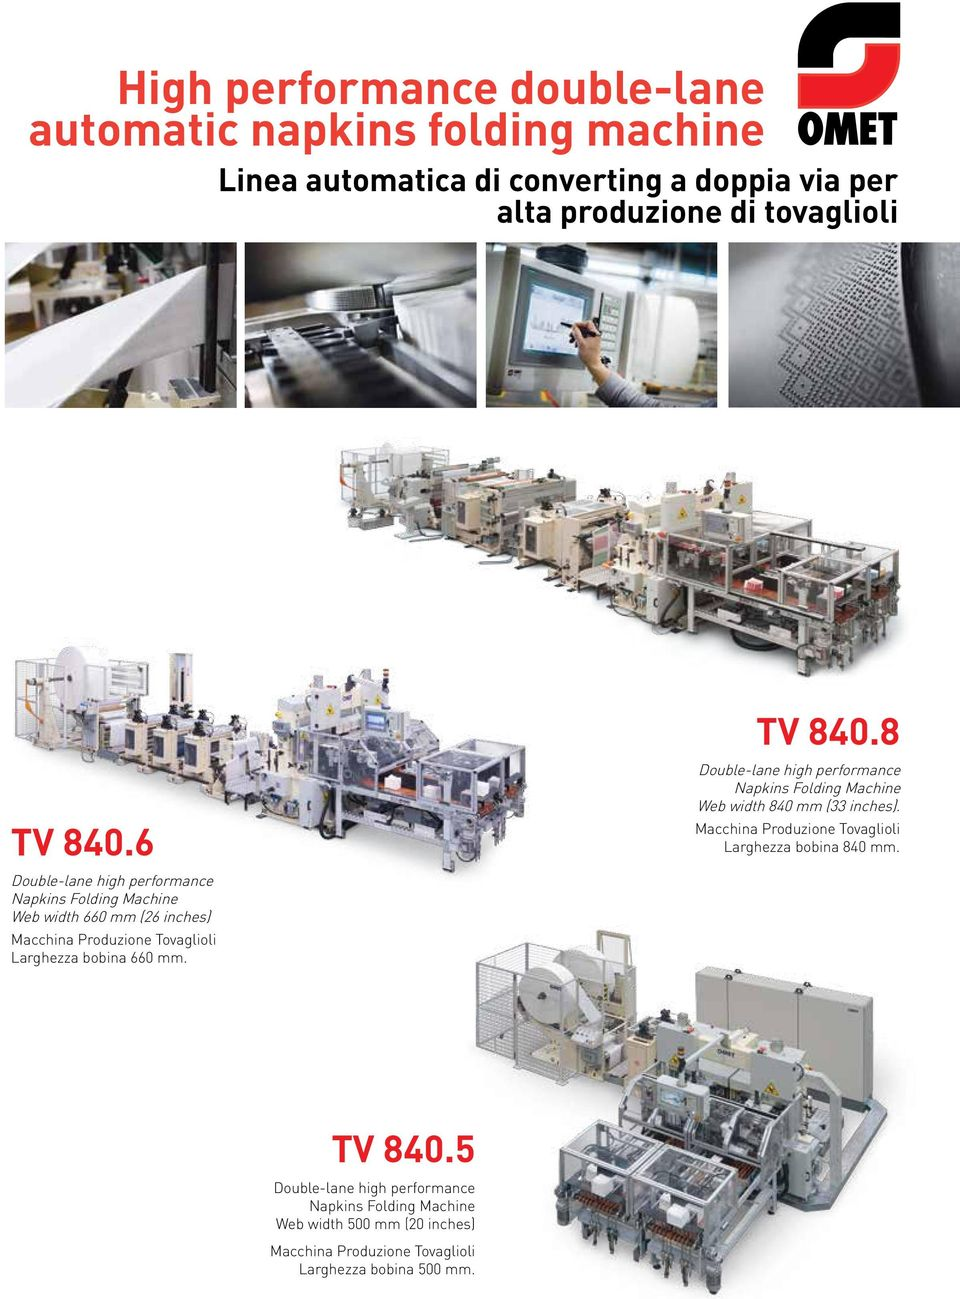 TV 840.8 Double-lane high performance Napkins Folding Machine Web width 840 mm (33 inches).